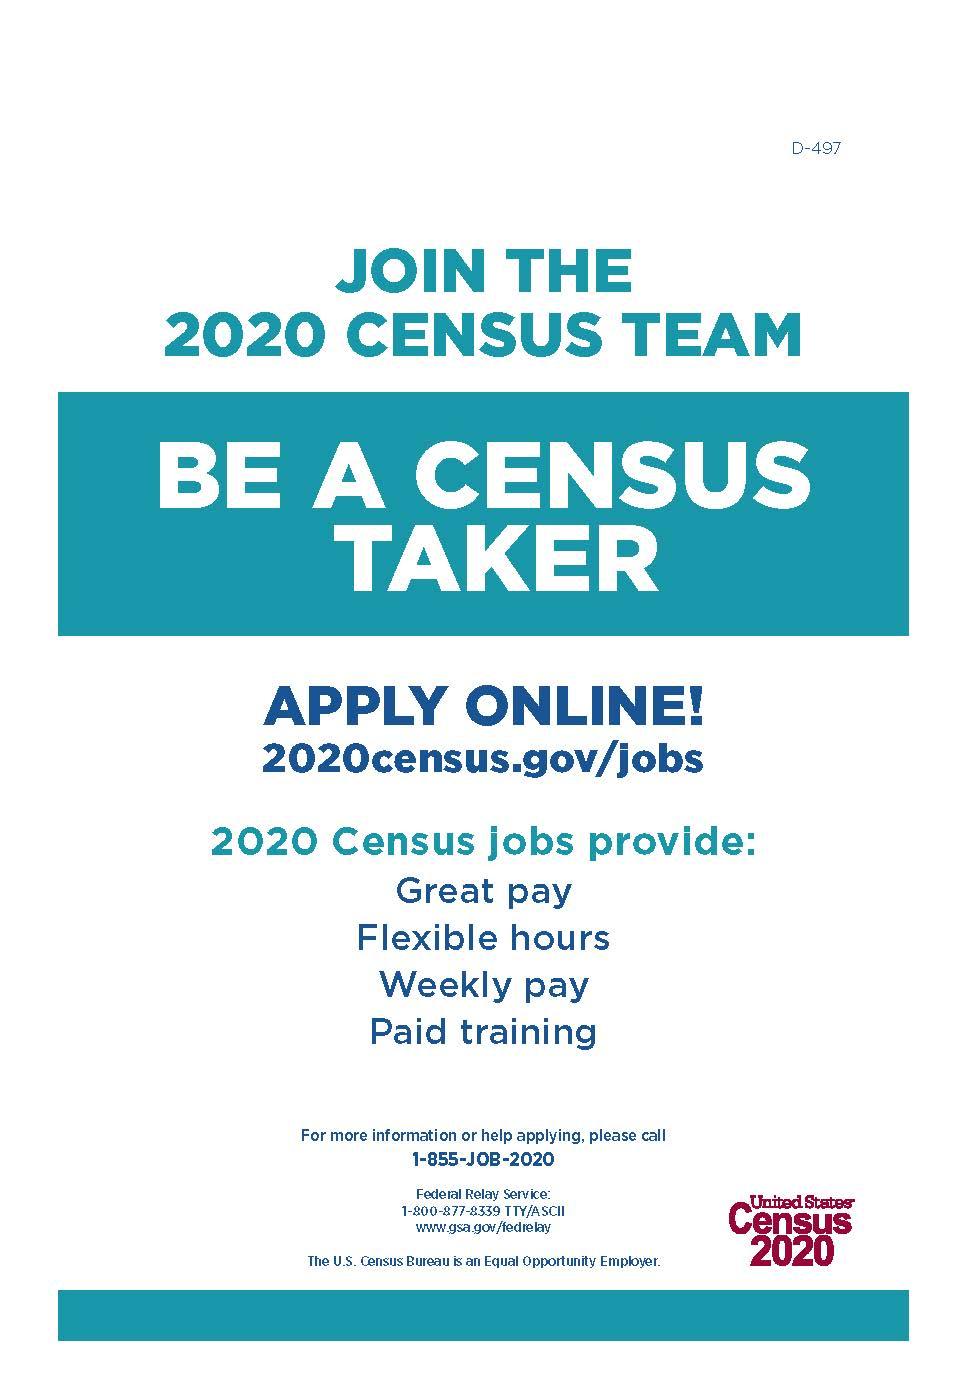 D-497 Be A Census Taker Poster